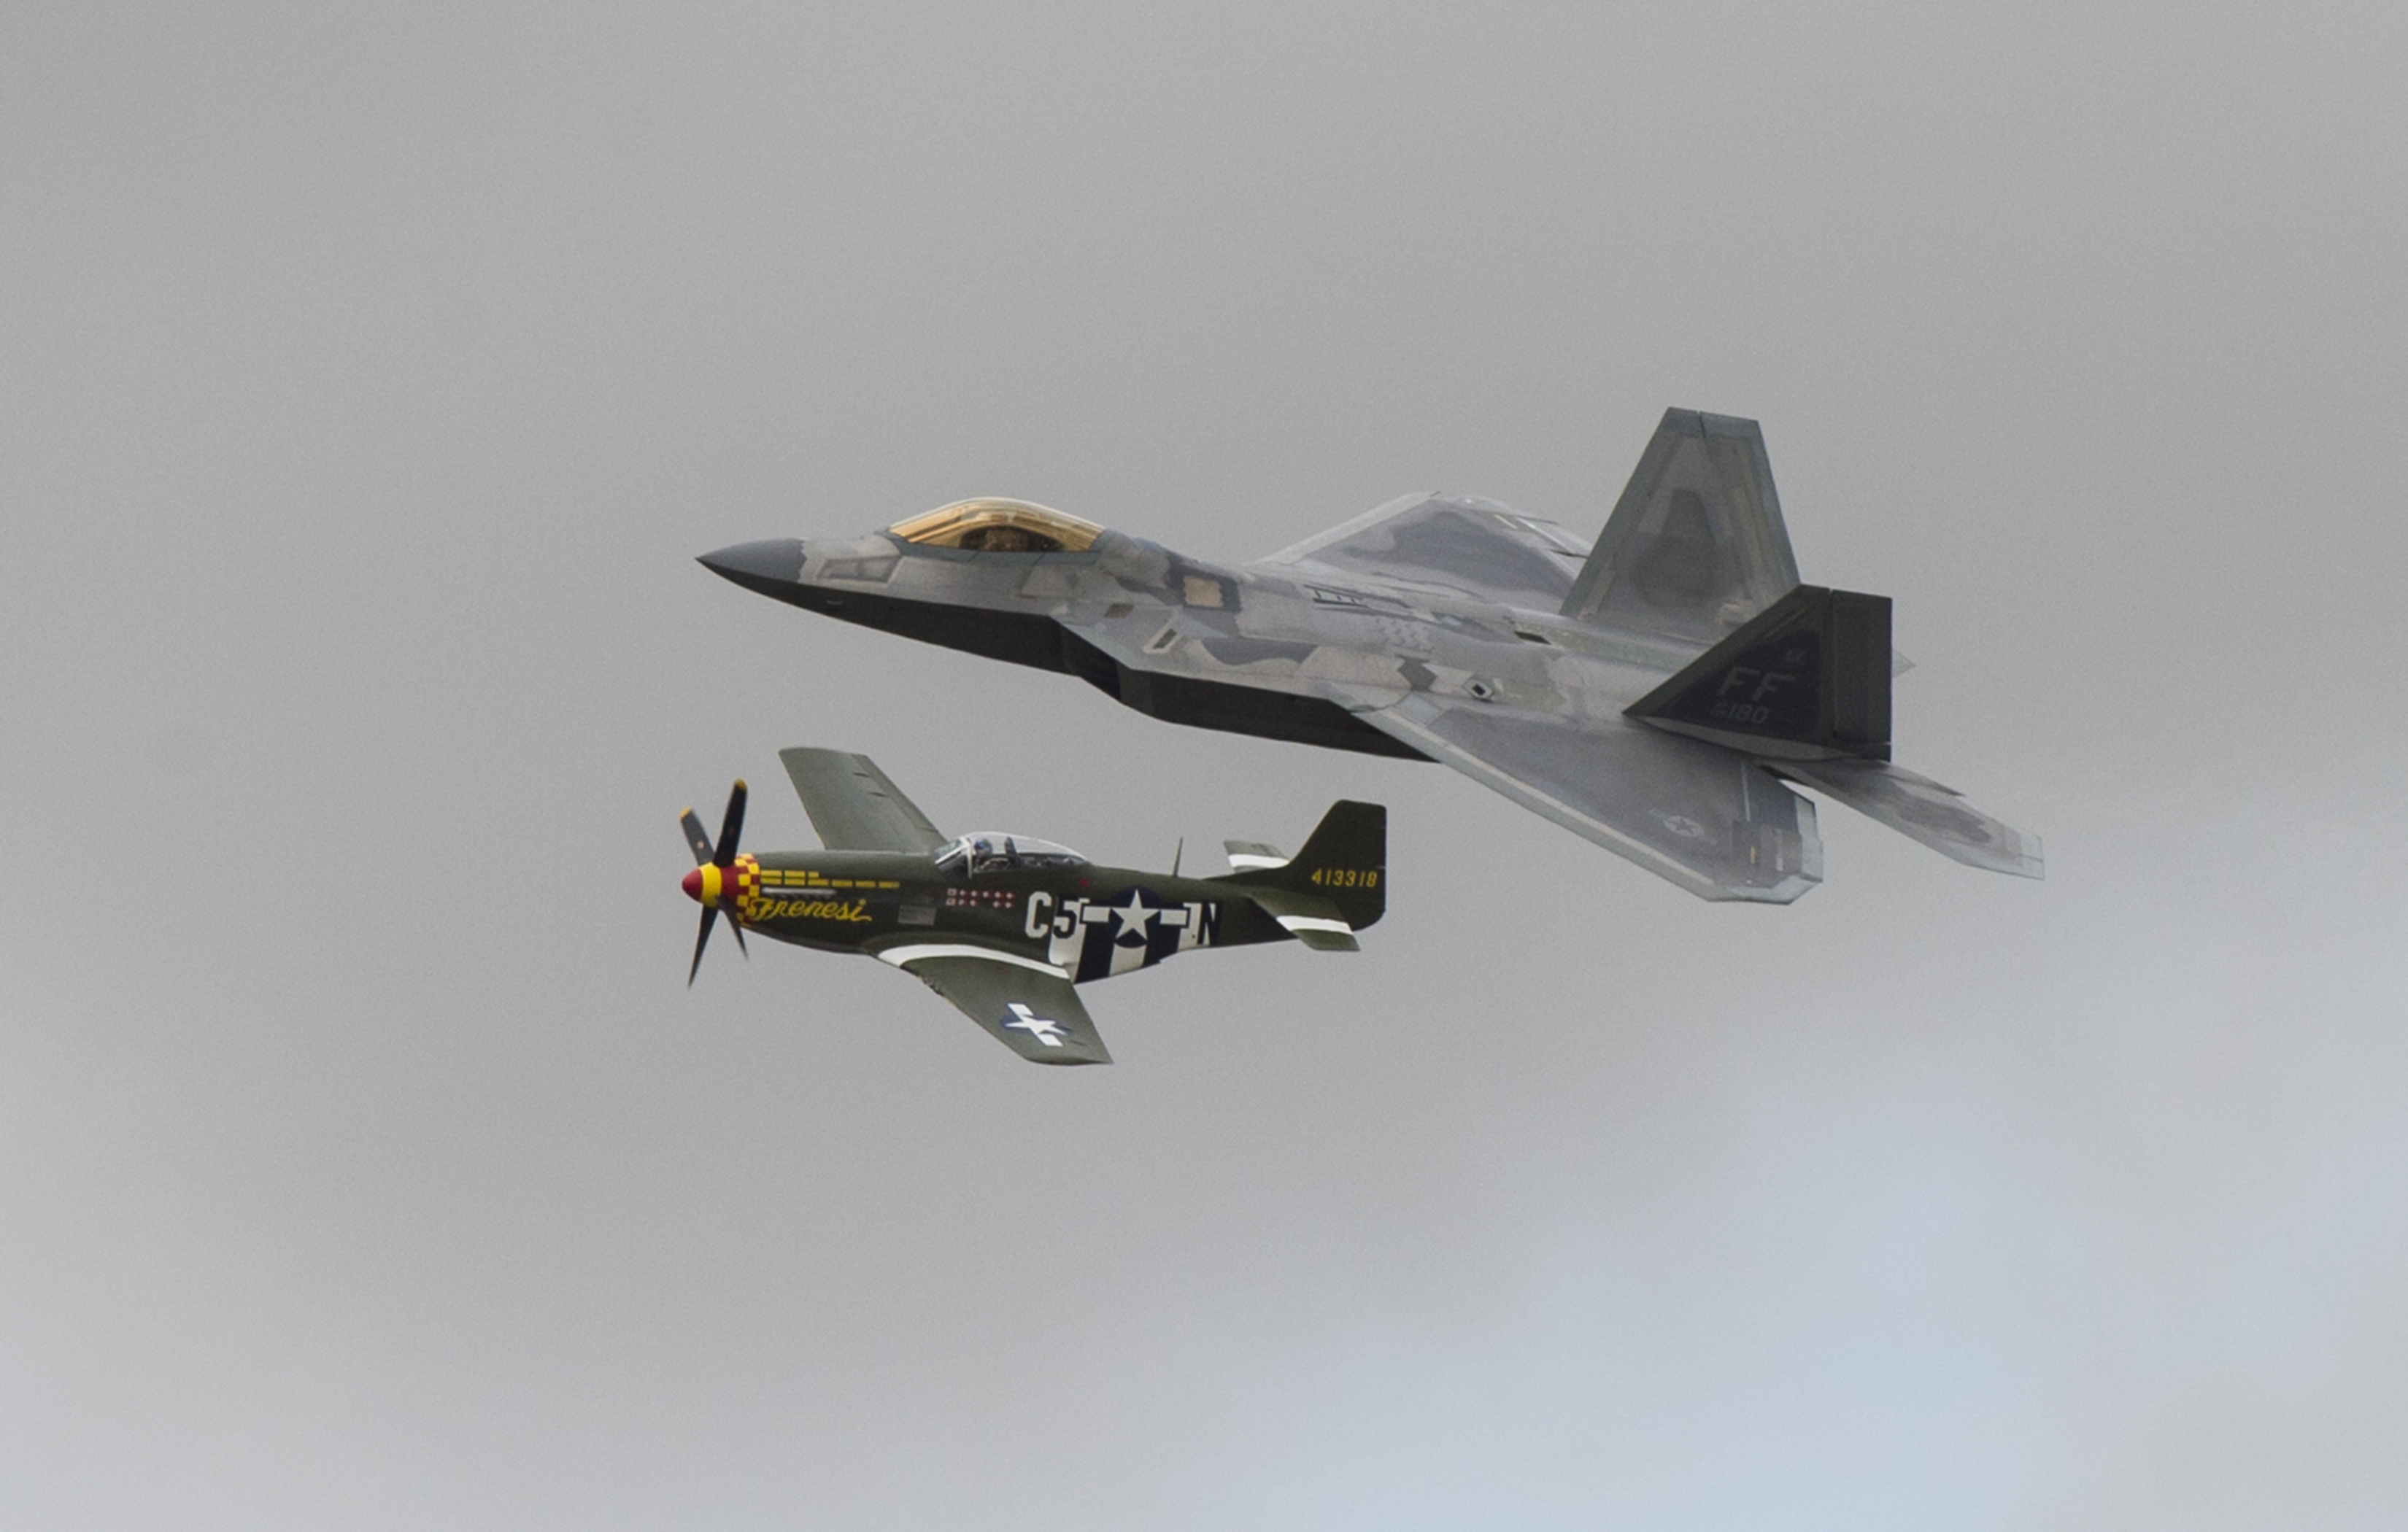 FAIRFORD, United Kingdom – A U.S. Air Force F-22 Raptor and P-51 Mustang fly past spectators during a U.S. Air Force heritage flight at the 2017 Royal International Air Tattoo (RIAT) located at RAF Fairford, United Kingdom, on July 16, 2017. This year commemorates the U.S. Air Force's 70th Anniversary which was highlighted during RIAT by displaying its lineage and advancements in military aircraft. (U.S. Air Force Photo by Tech. Sgt. Brian Kimball)